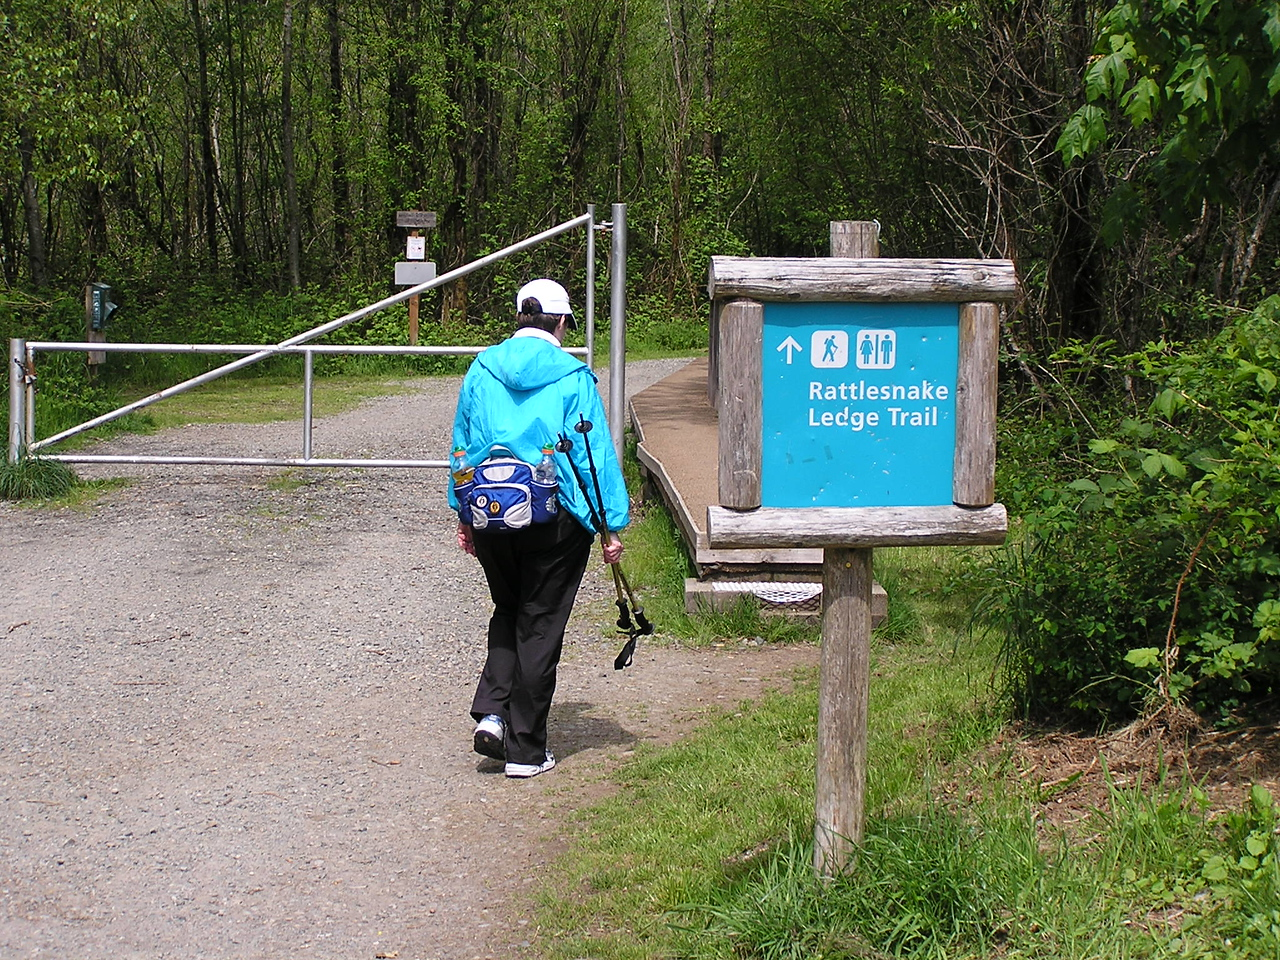 The volkswalk took us a short way towards Rattlesnake Ledge.  One never knows ...   Mary.